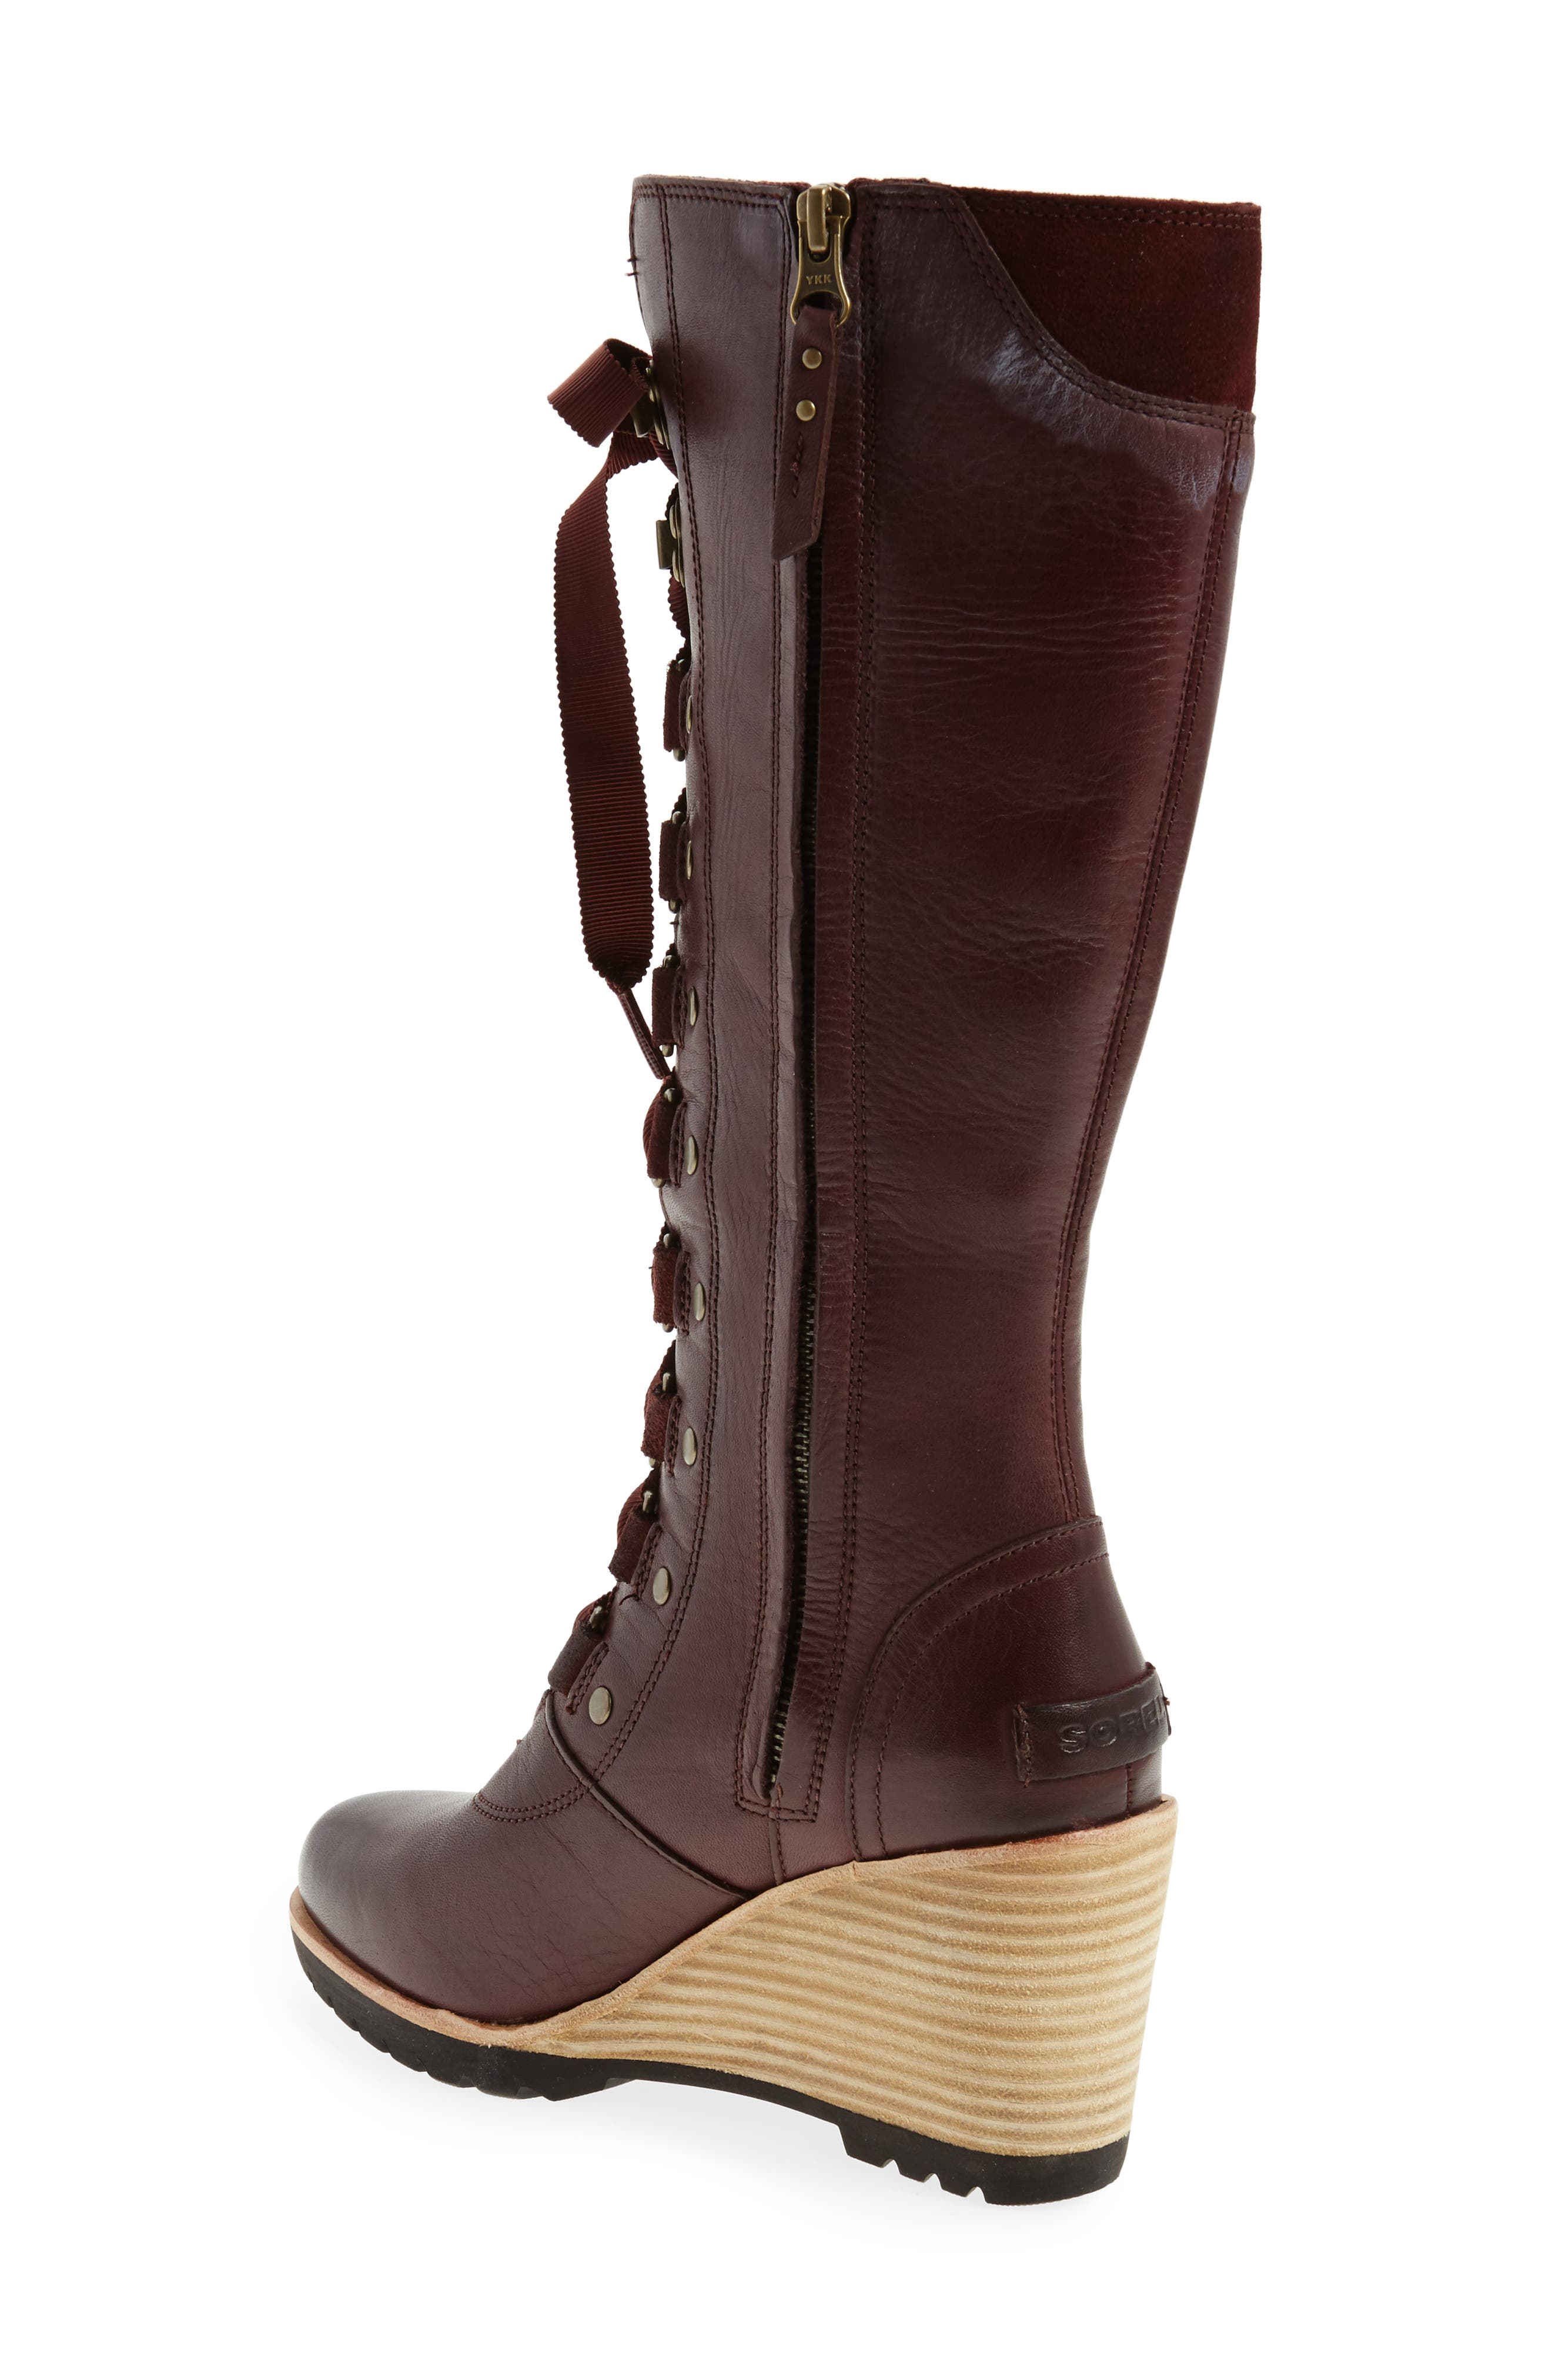 After Hours Lace Up Wedge Boot,                             Alternate thumbnail 4, color,